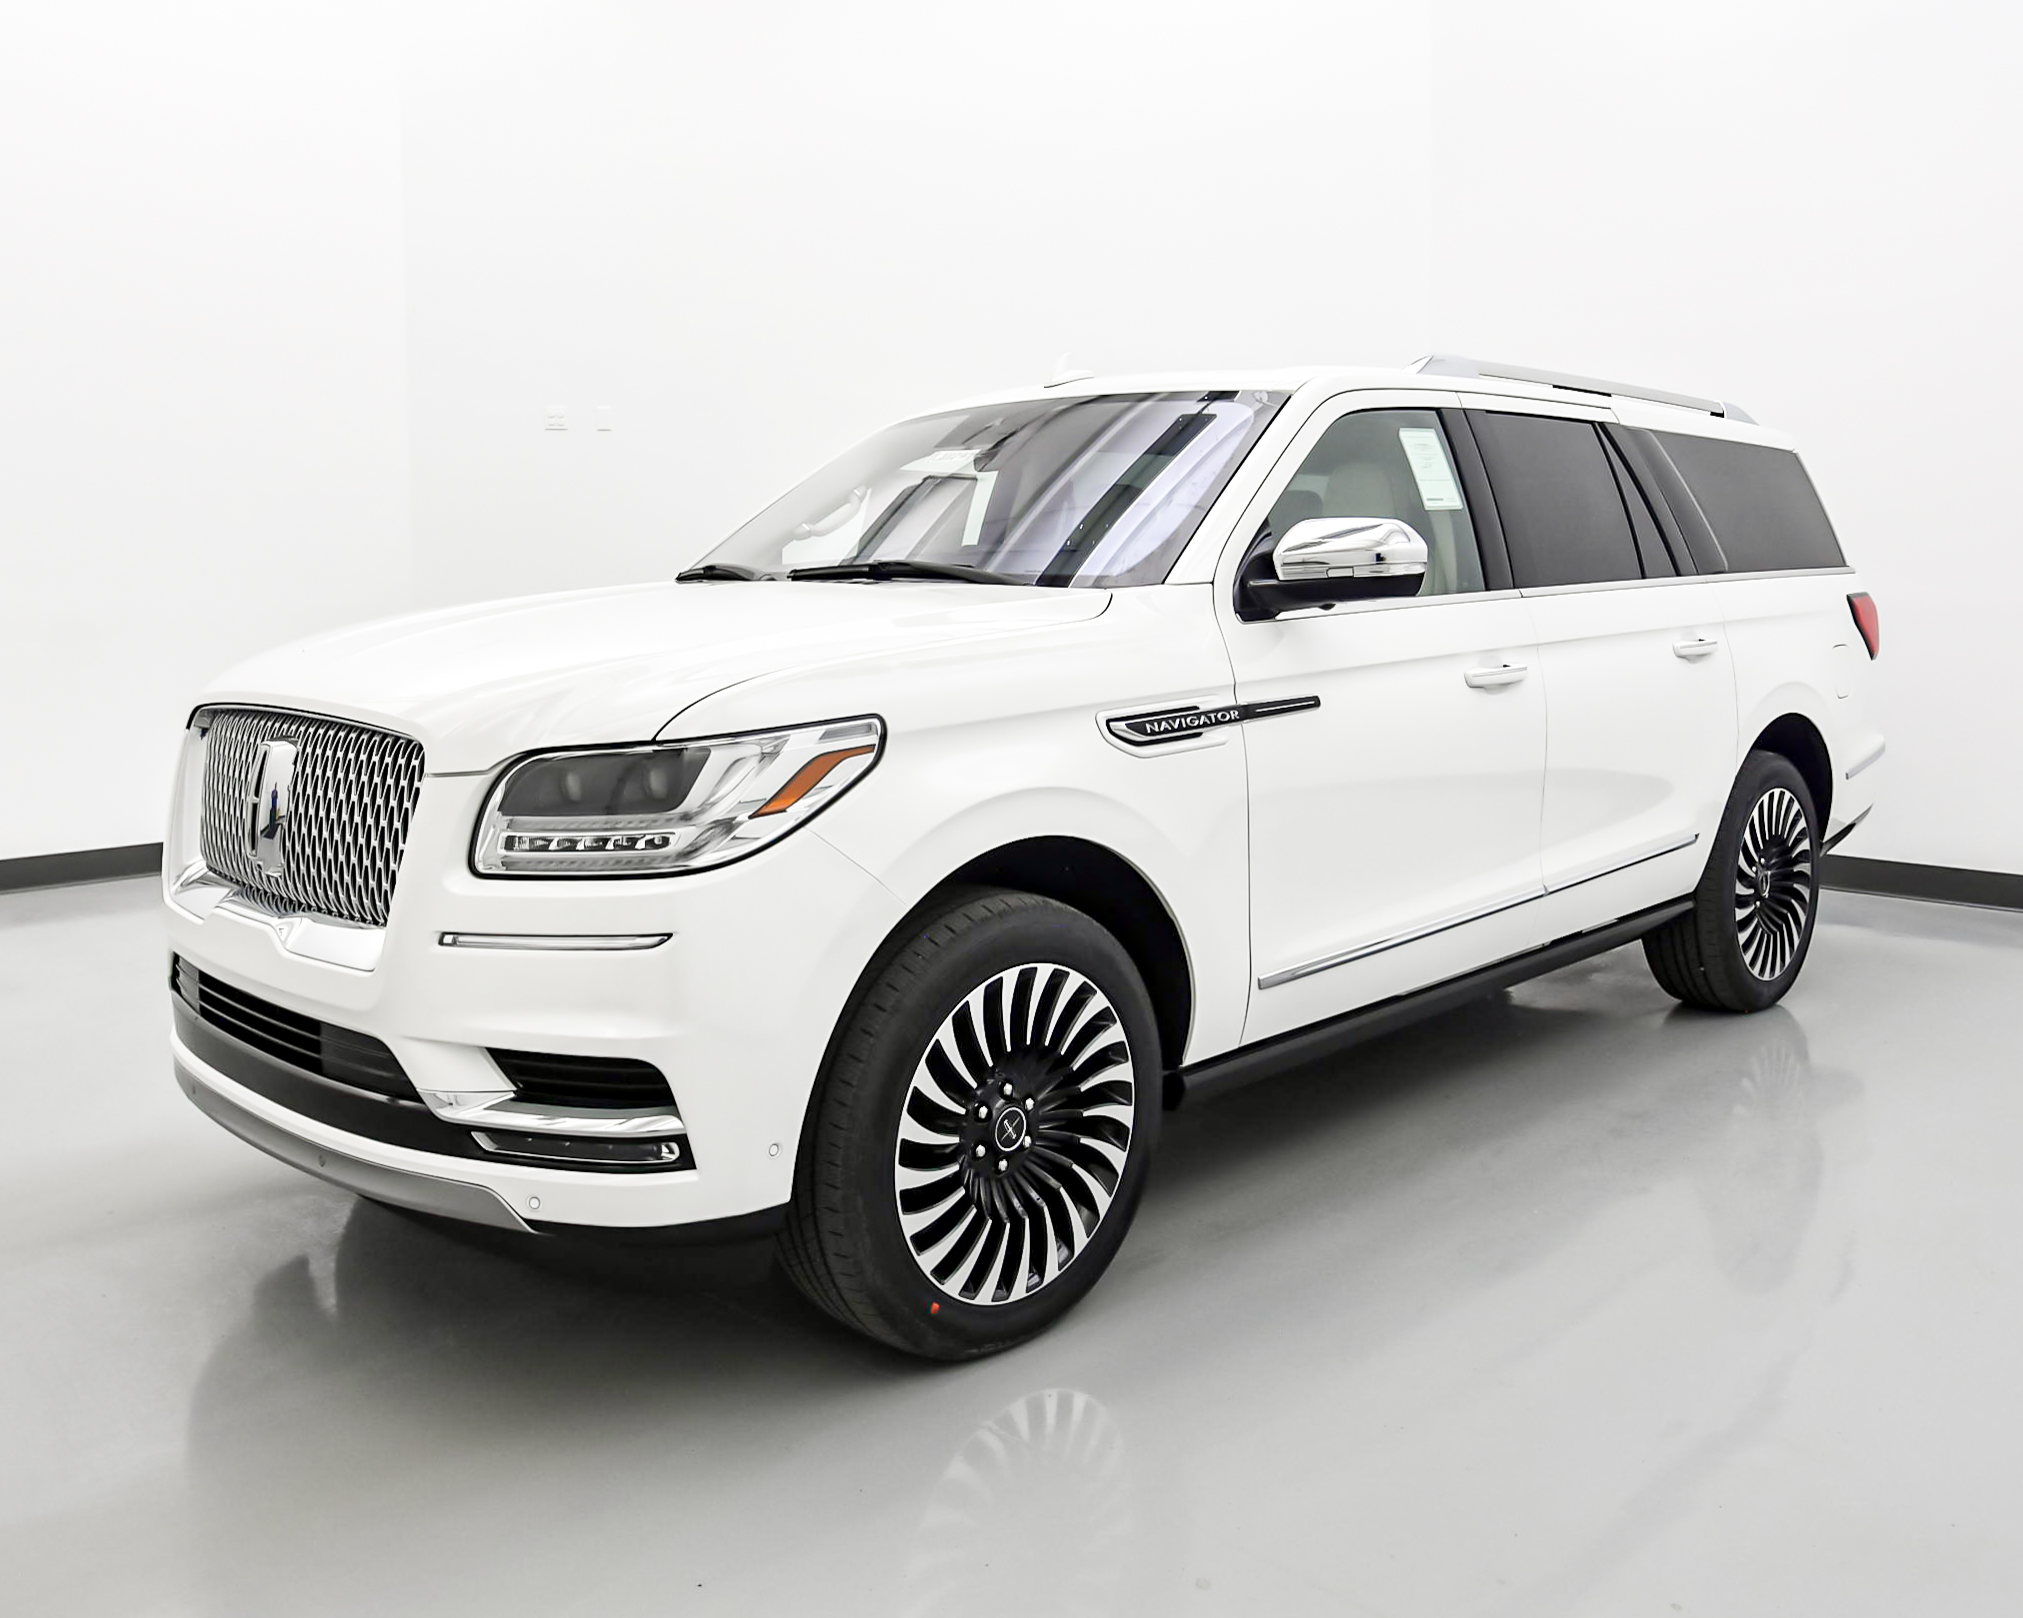 woodhouse new 2020 lincoln navigator l for sale lincoln woodhouse 2020 lincoln navigator l for sale